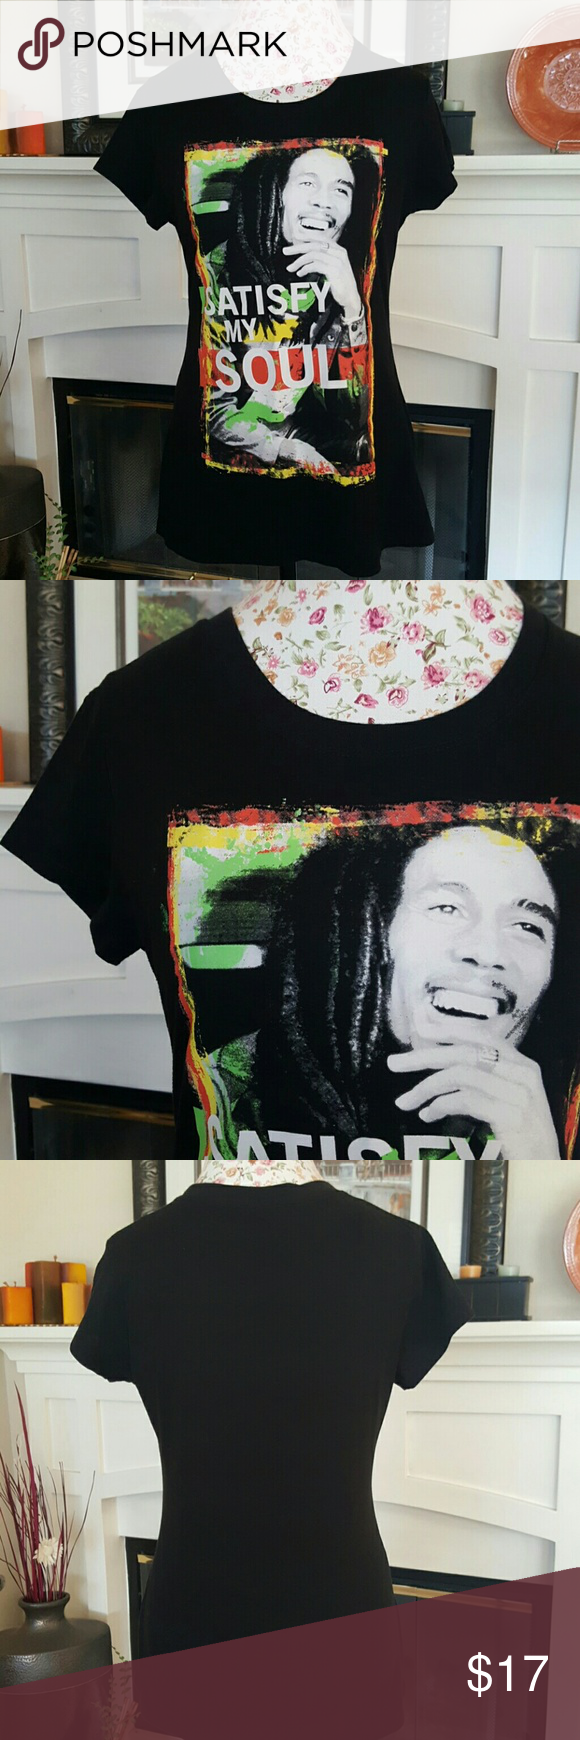 New Listing! Bob Marley T-Shirt Perfect for any Bob fan! Only used a few times. Wear with a boho flowy skirt or jean pants or shorts! Tag says XL but fits mire like a Medium. Open to offers. Tops